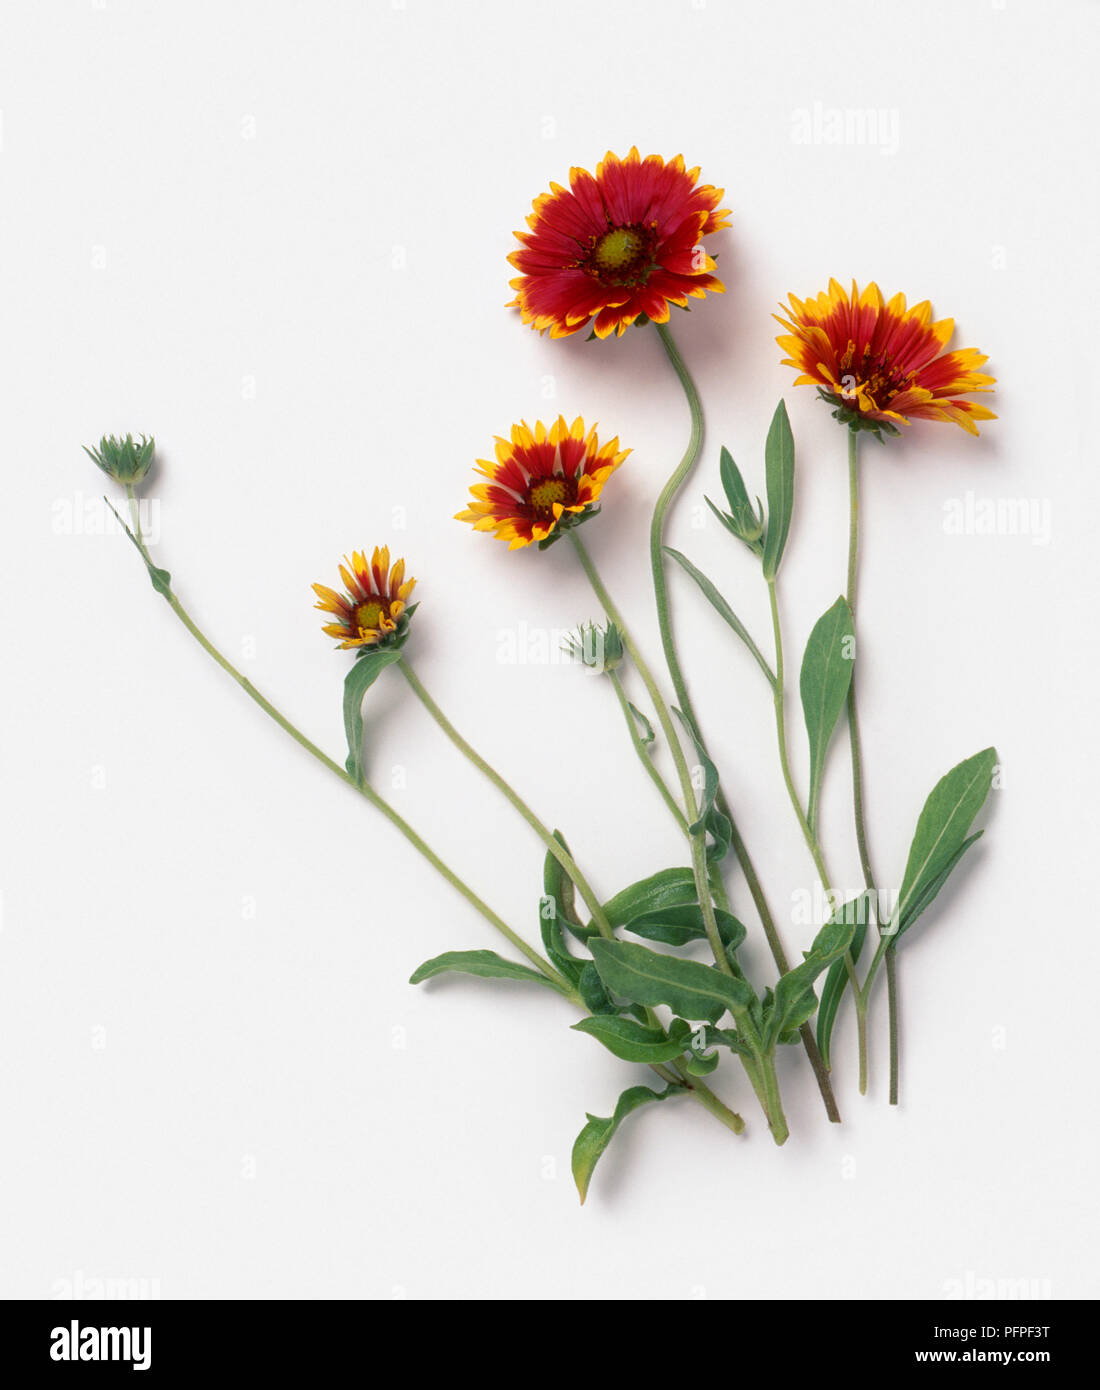 Gaillardia Dazzler With Red And Yellow Flowers Buds And Green Leaves On Long Stems Stock Photo Alamy